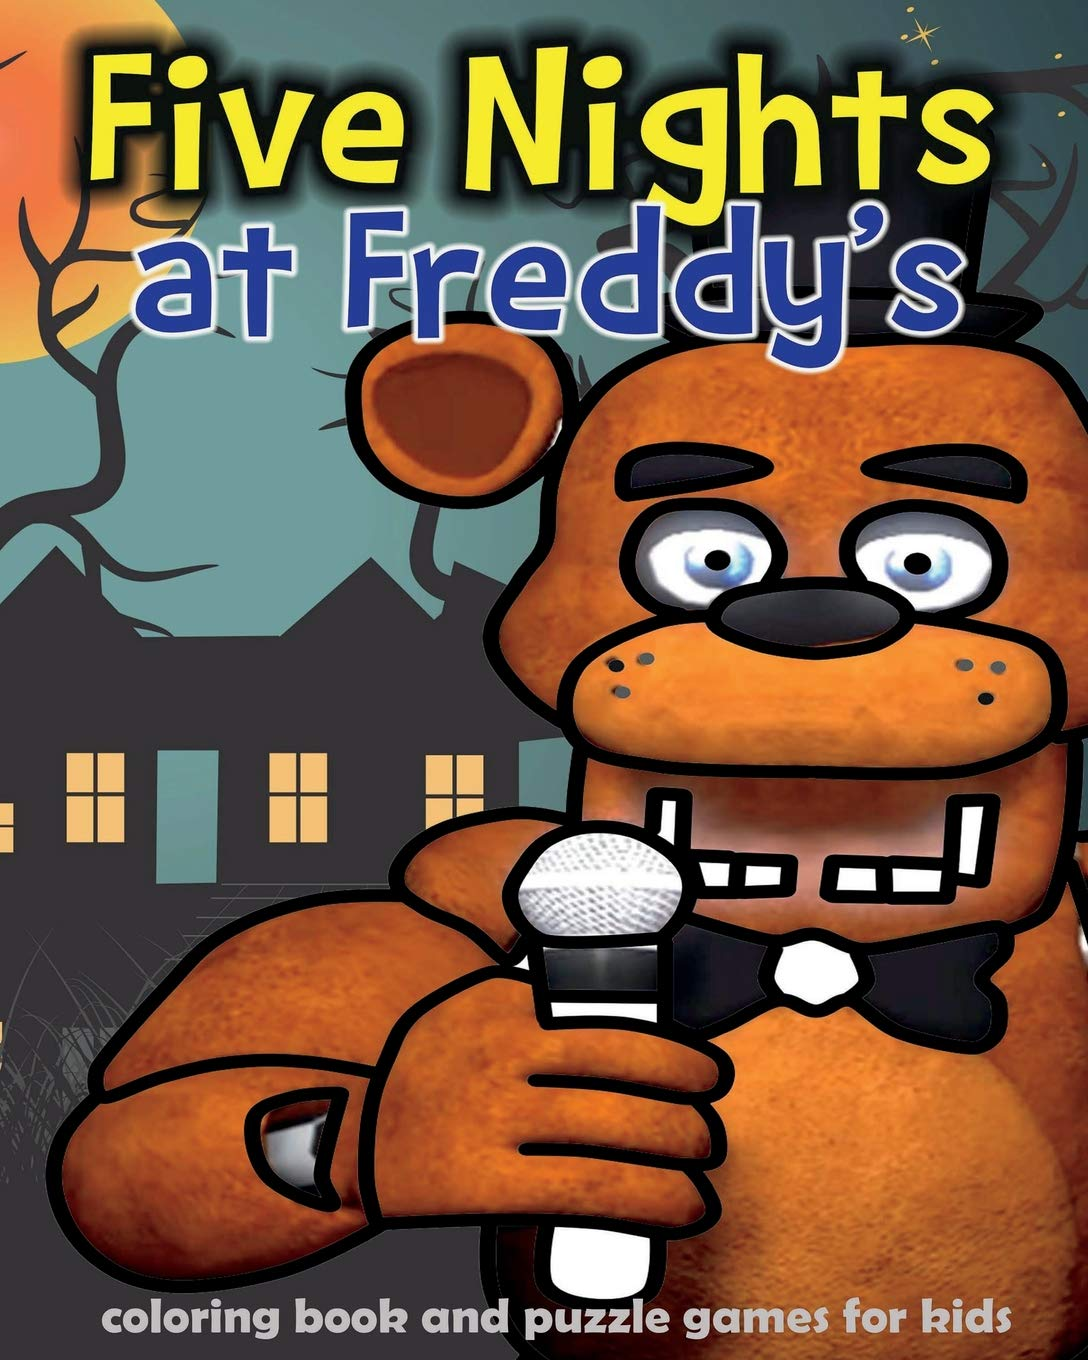 Five Nights at Freddy\'s: coloring book and puzzle games for kids ...